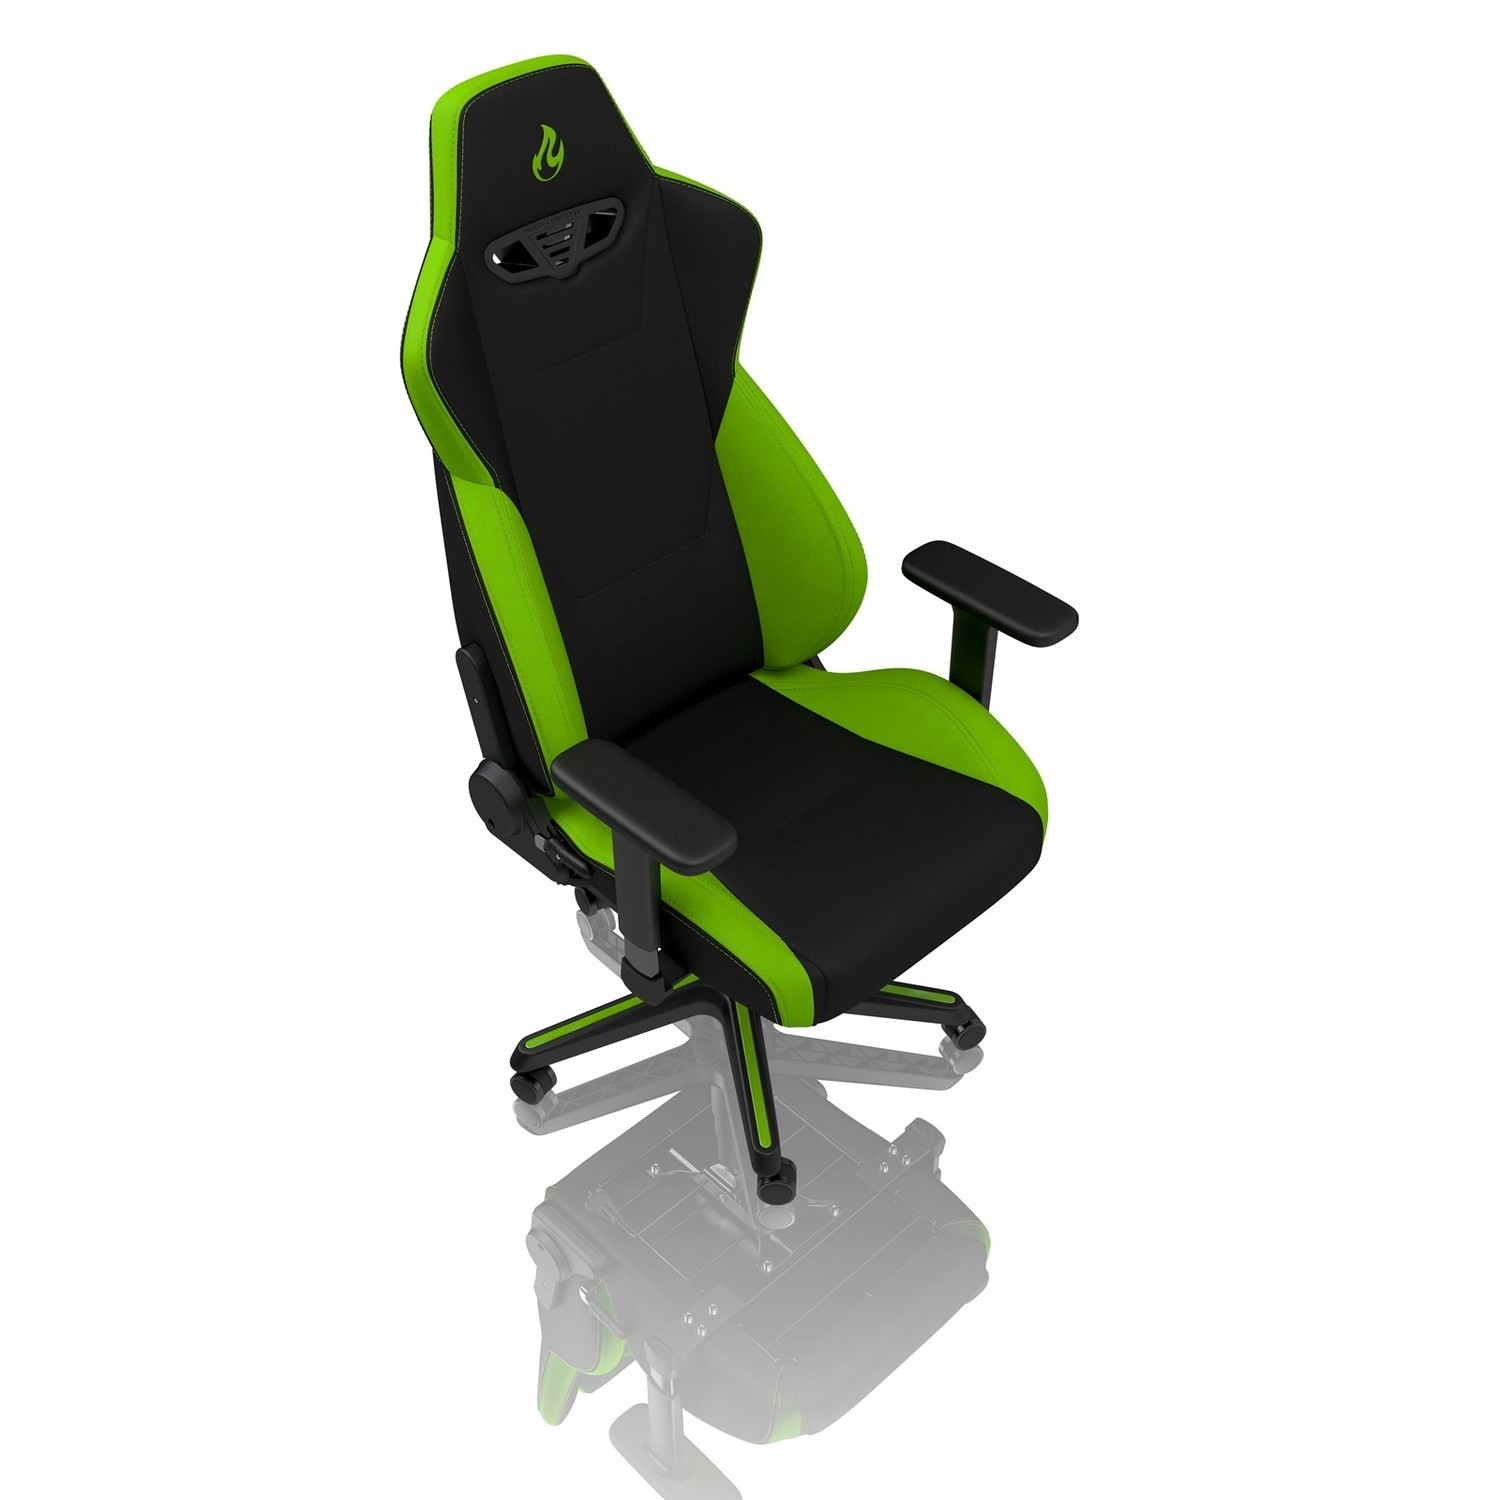 Surprising Nitro Concepts S300 Fabric Gaming Chair In Atomic Green Ibusinesslaw Wood Chair Design Ideas Ibusinesslaworg